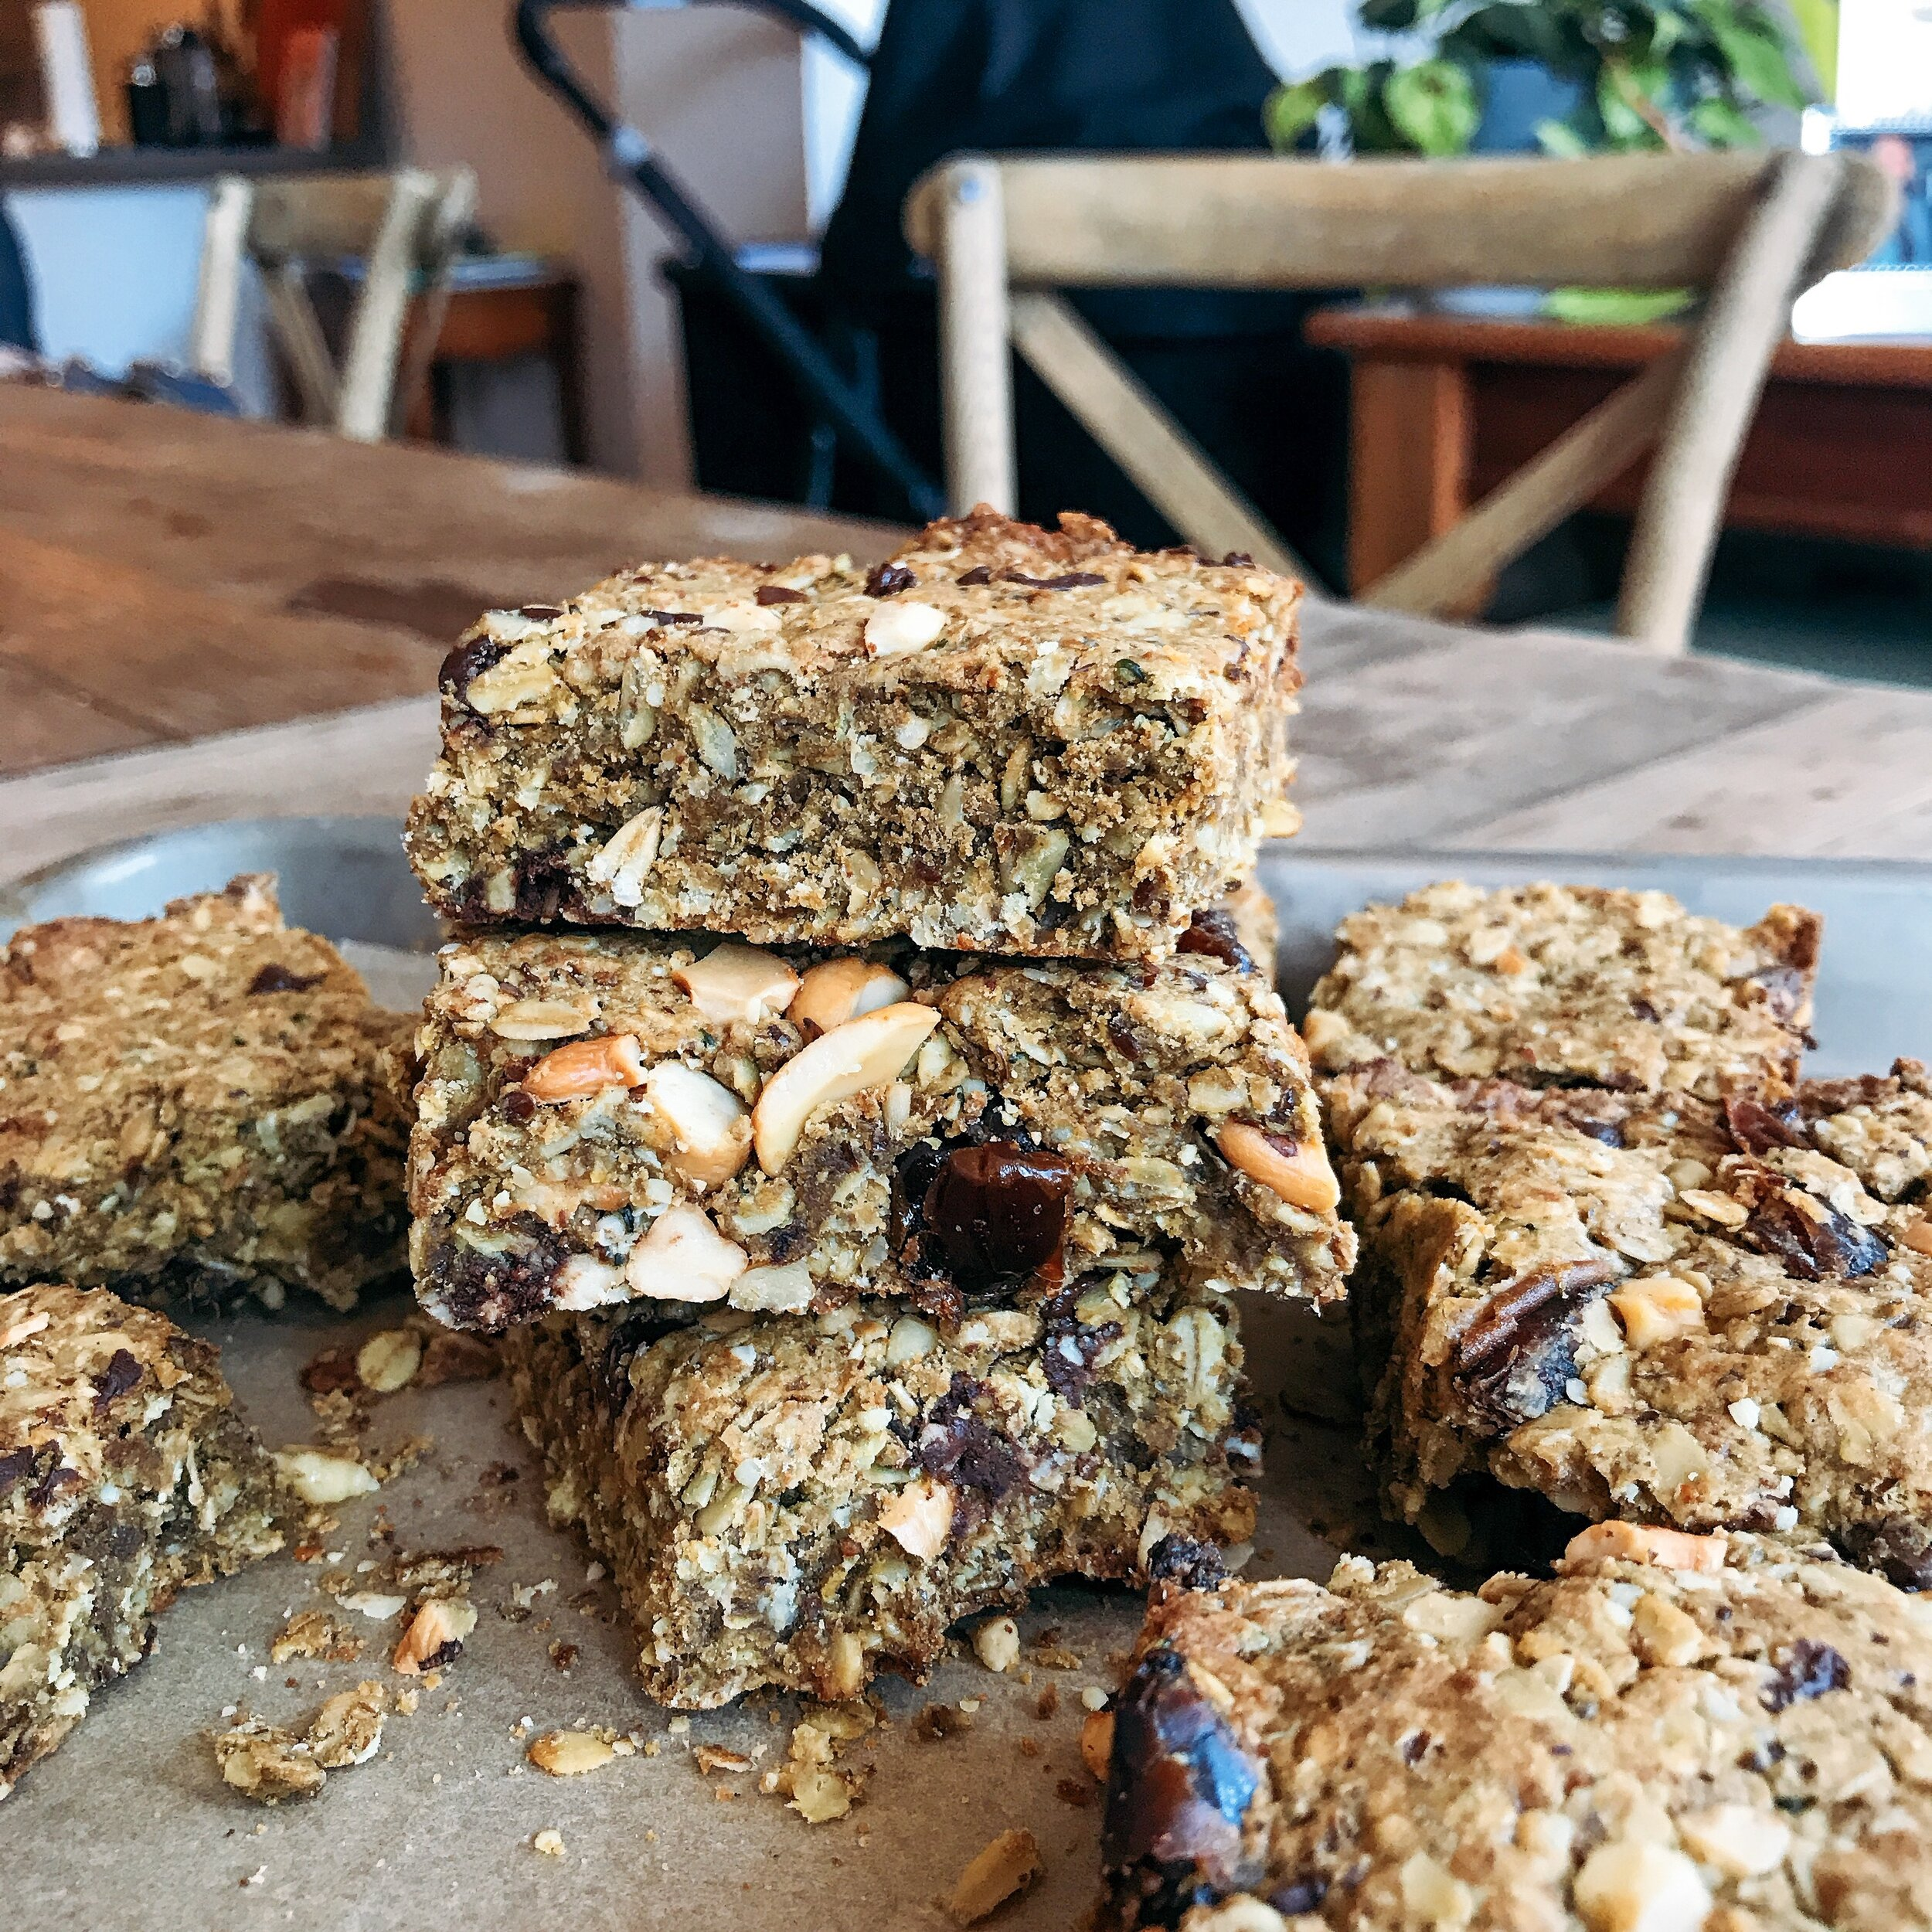 Crunchy granola bars that are filled with dates, nuts, oatmeal, and chocolate chips that are perfectly healthy for a breakfast on the go or mid afternoon treat - they even have a lactation boost for anyone who is nursing!